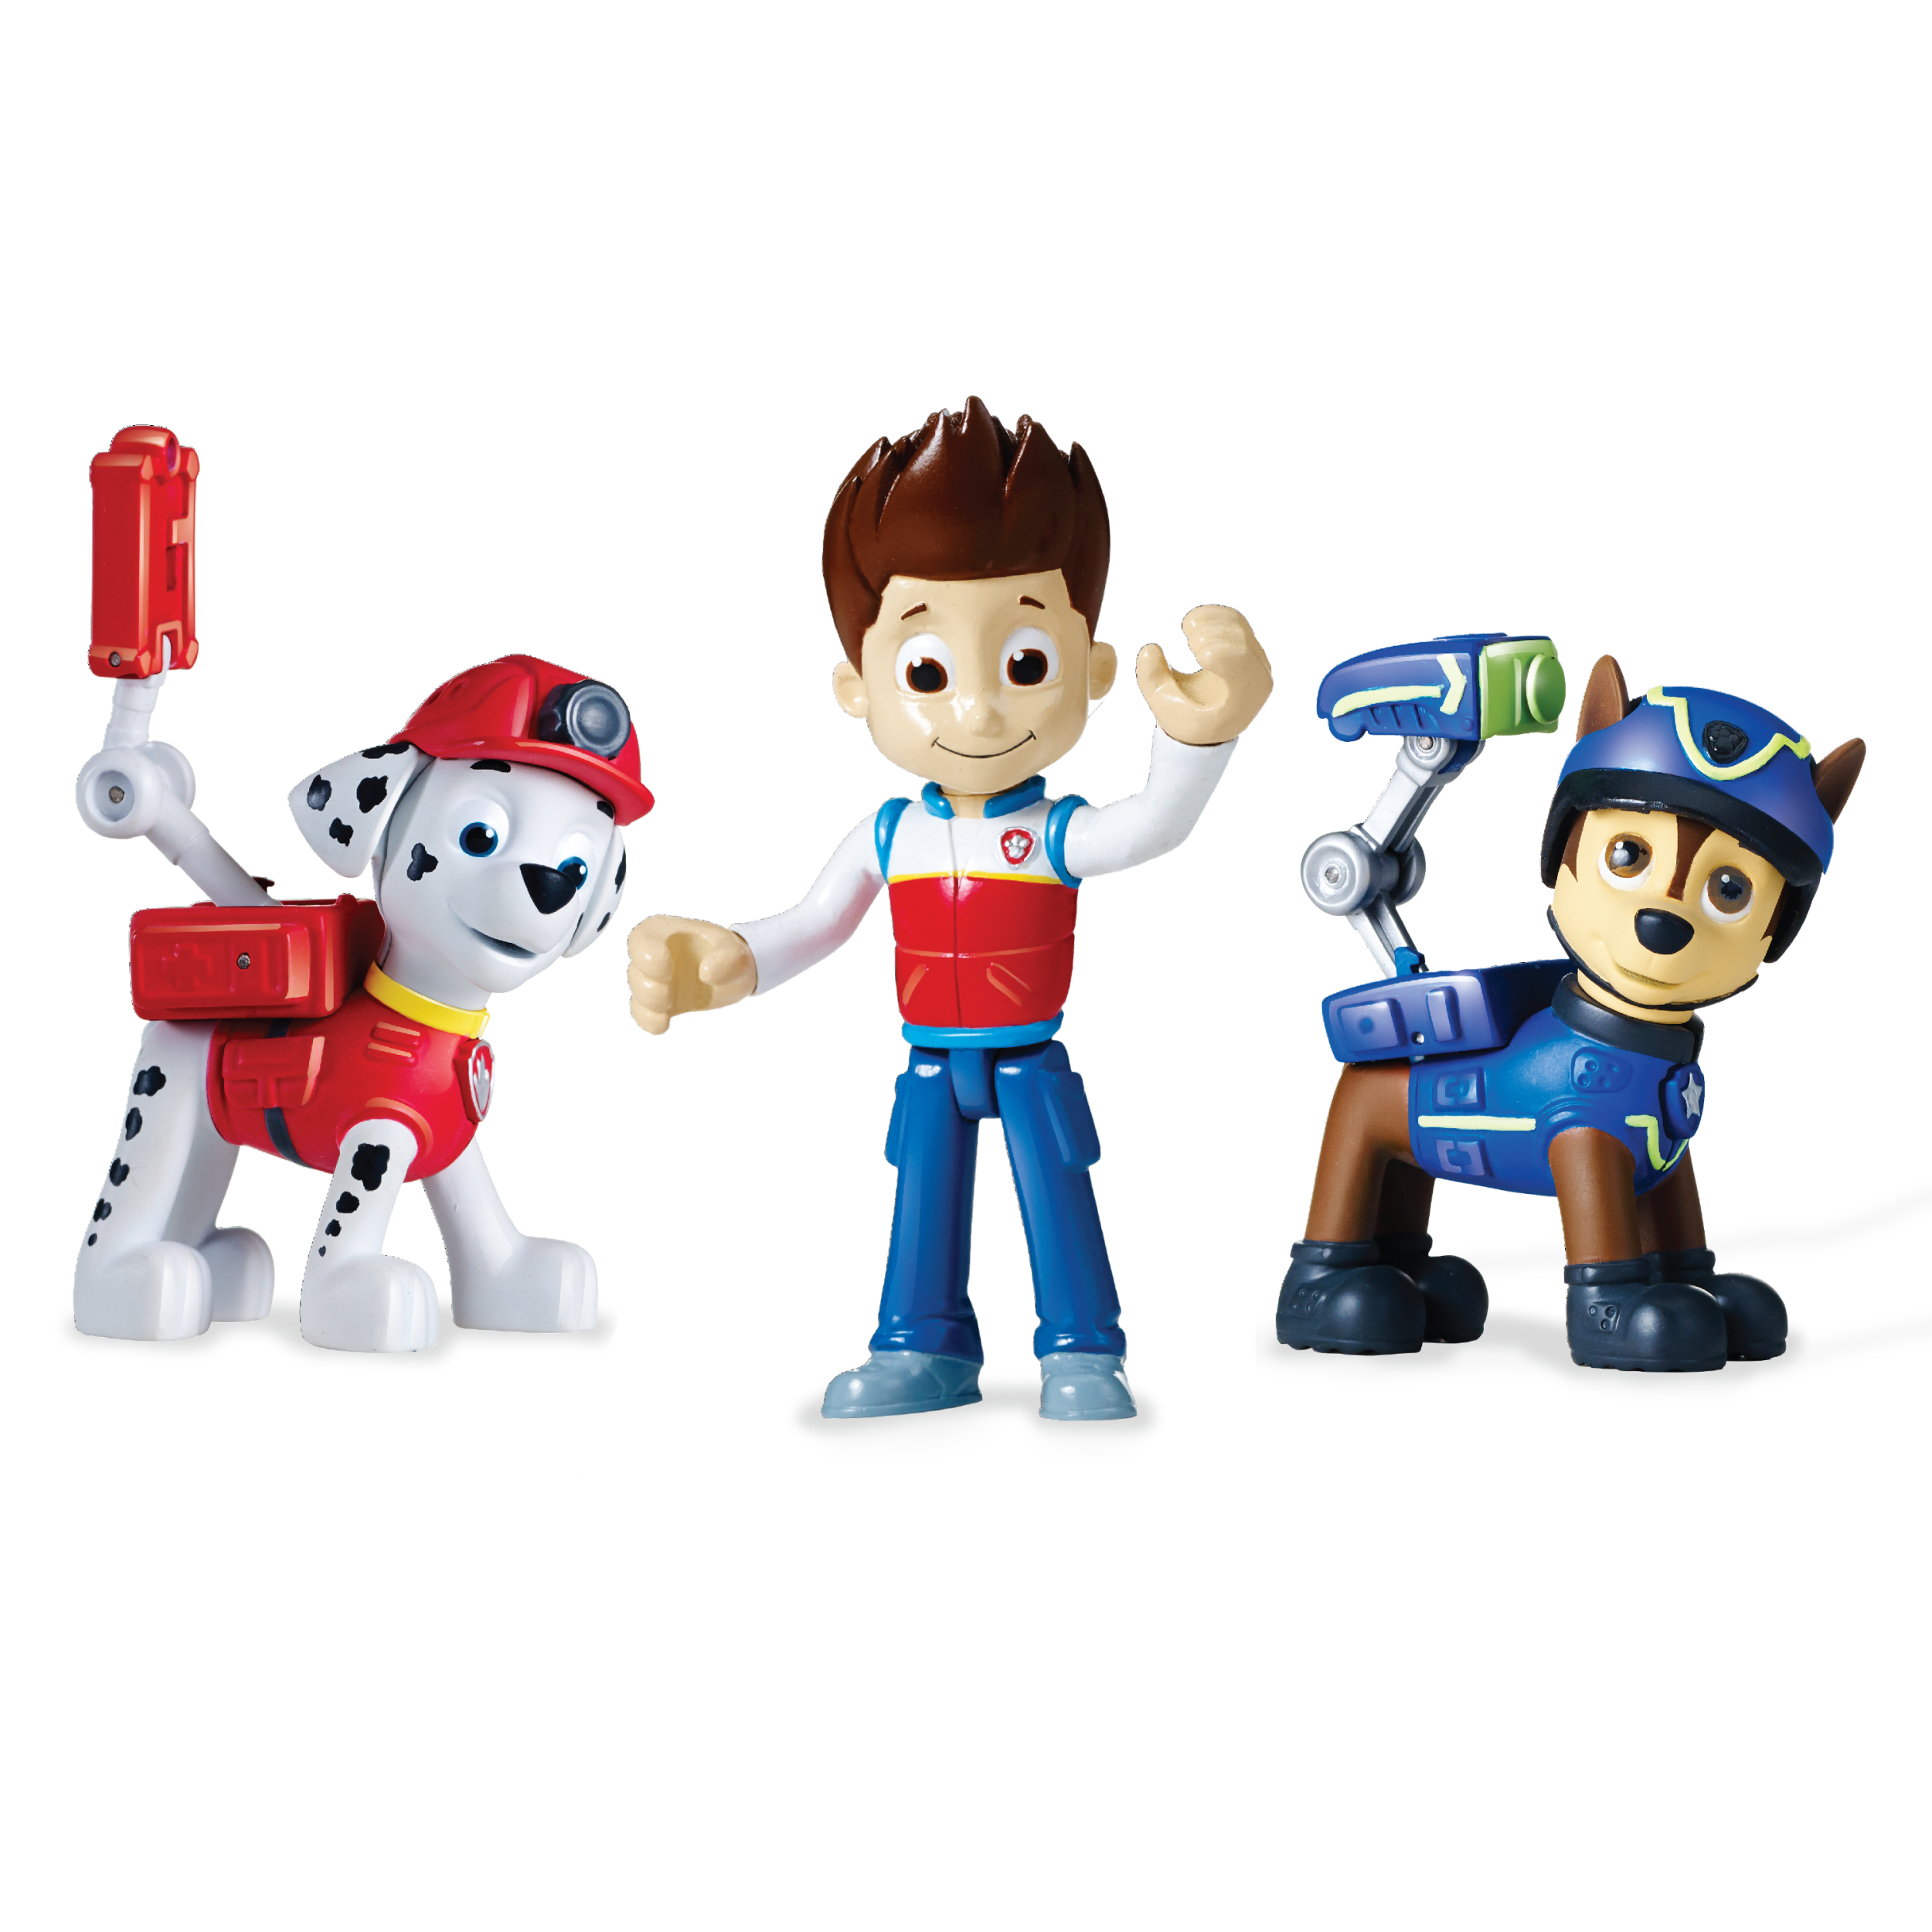 Paw Patrol Action Pack Pups Figure Set, 3‐Pack, Ryder, Chase and Marshall